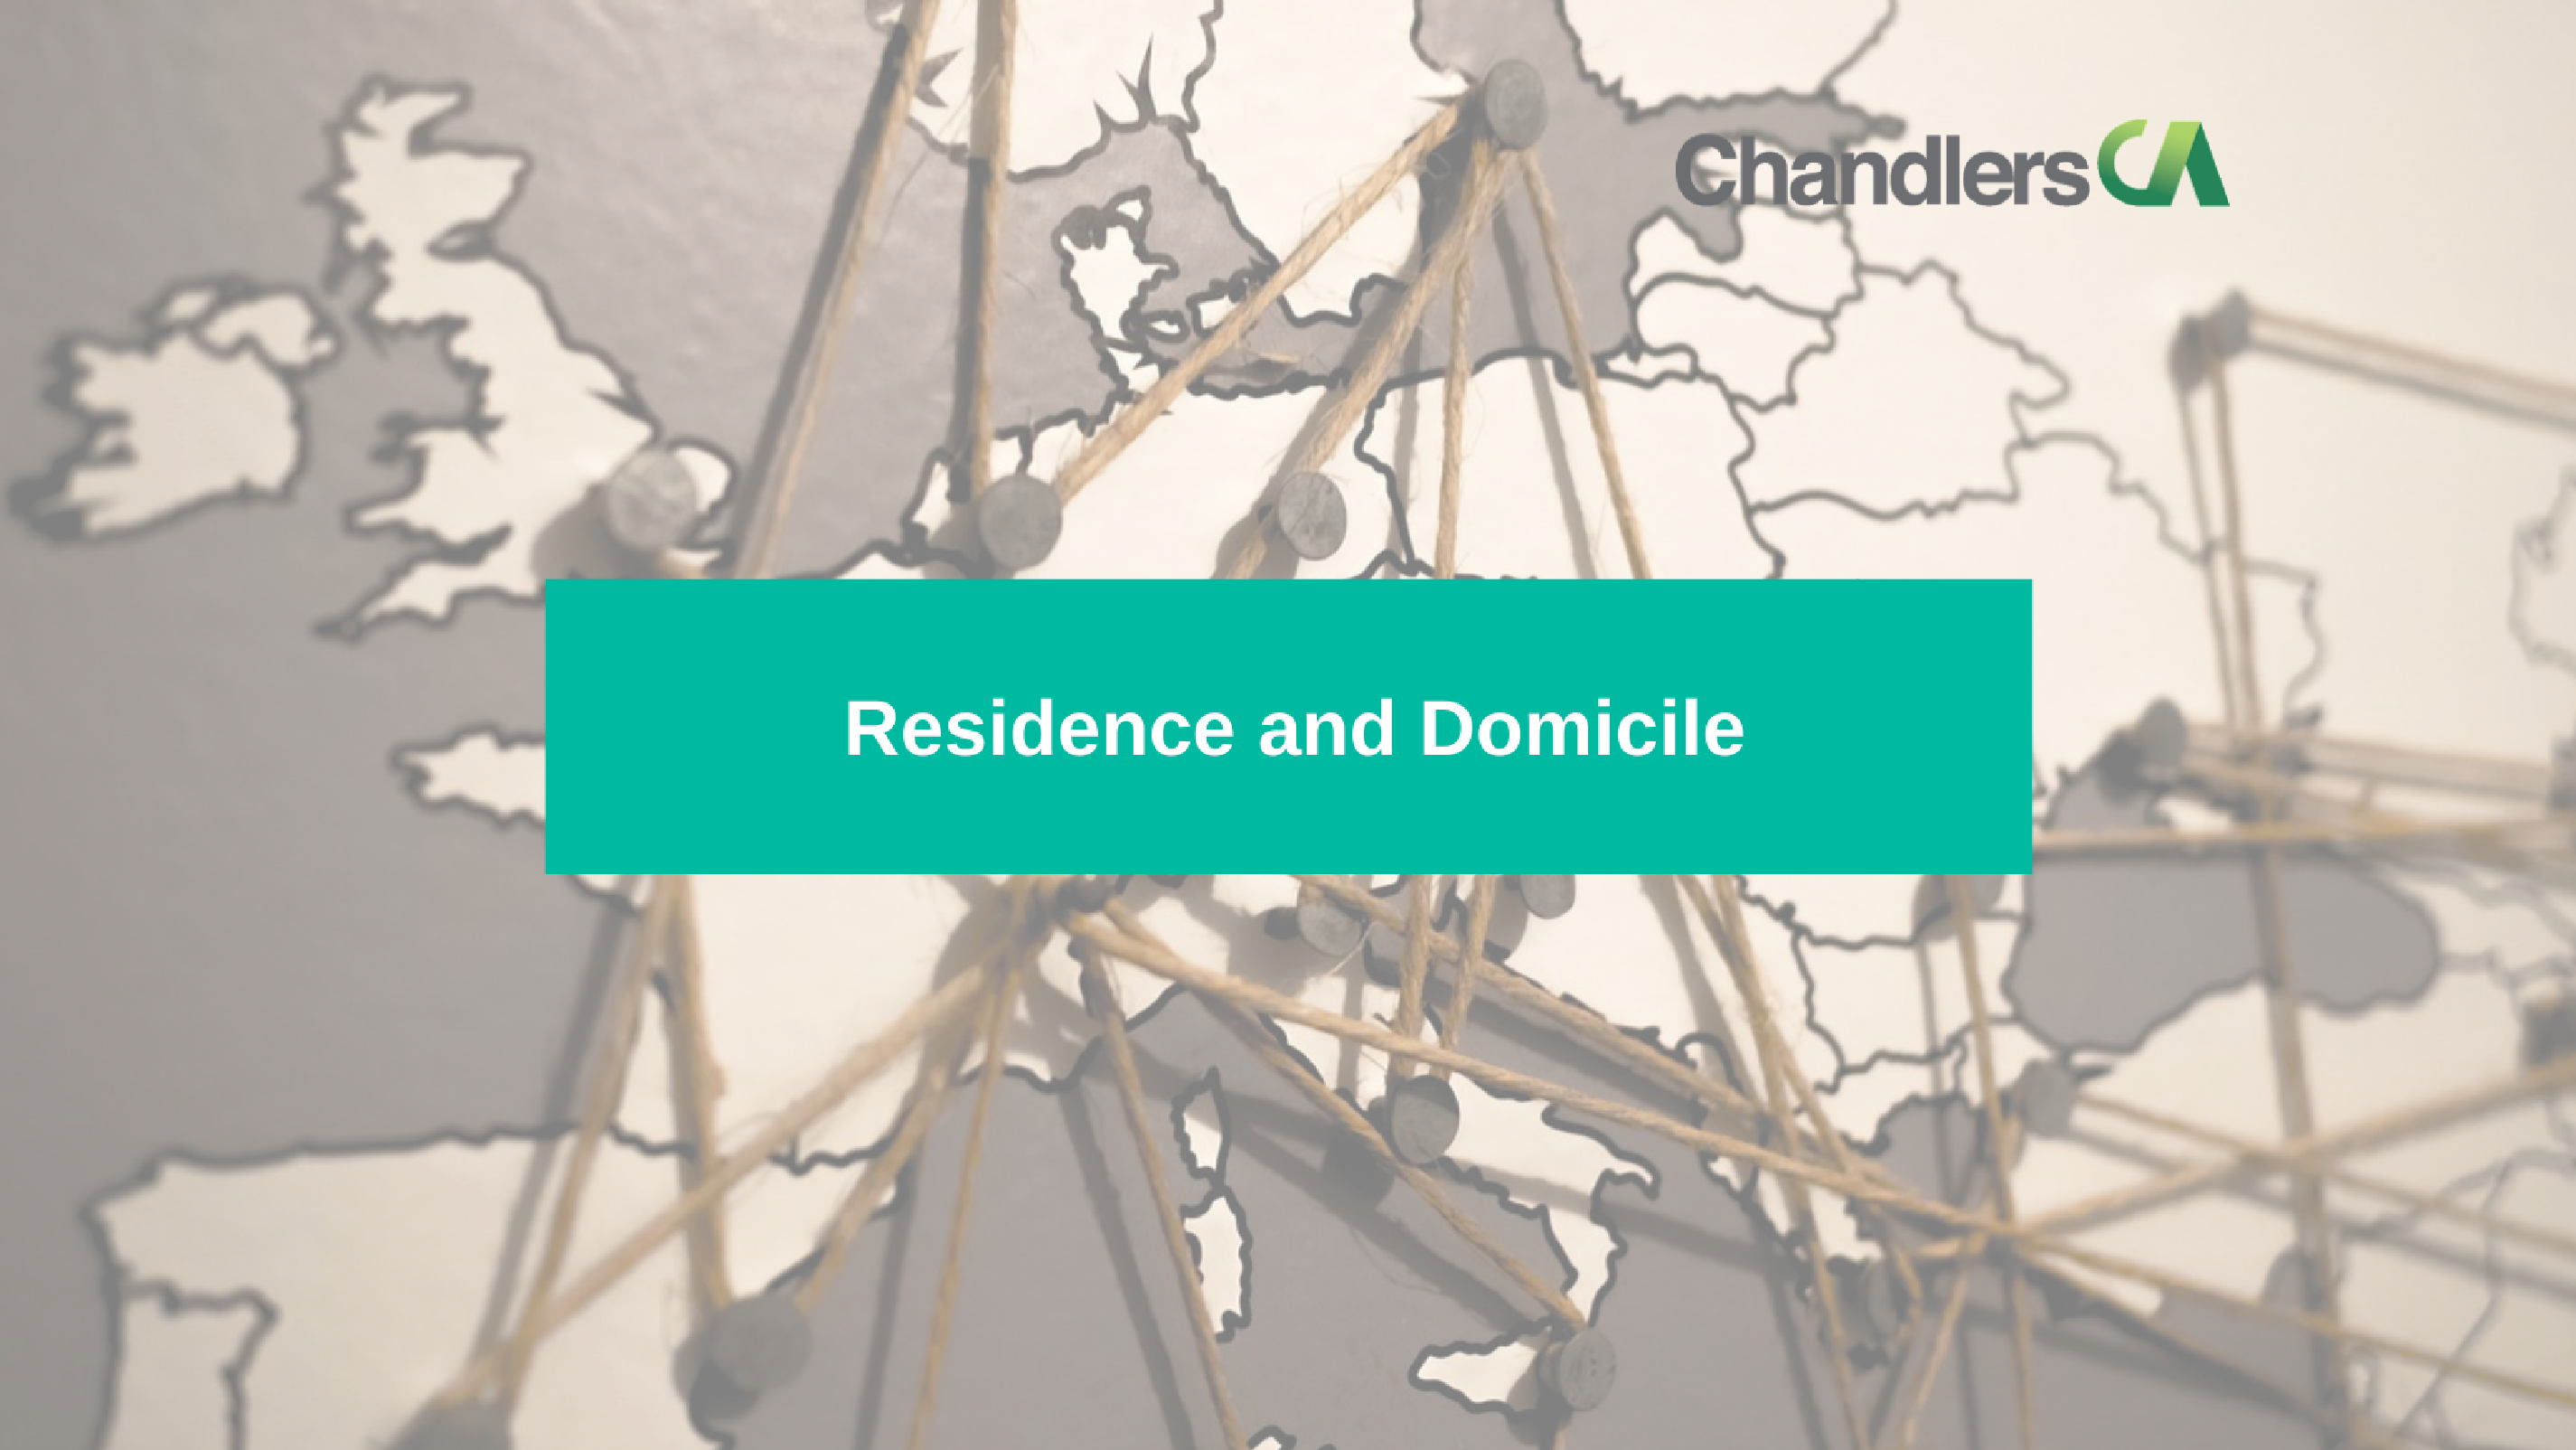 Guide to residence and domicile tax issues in the UK